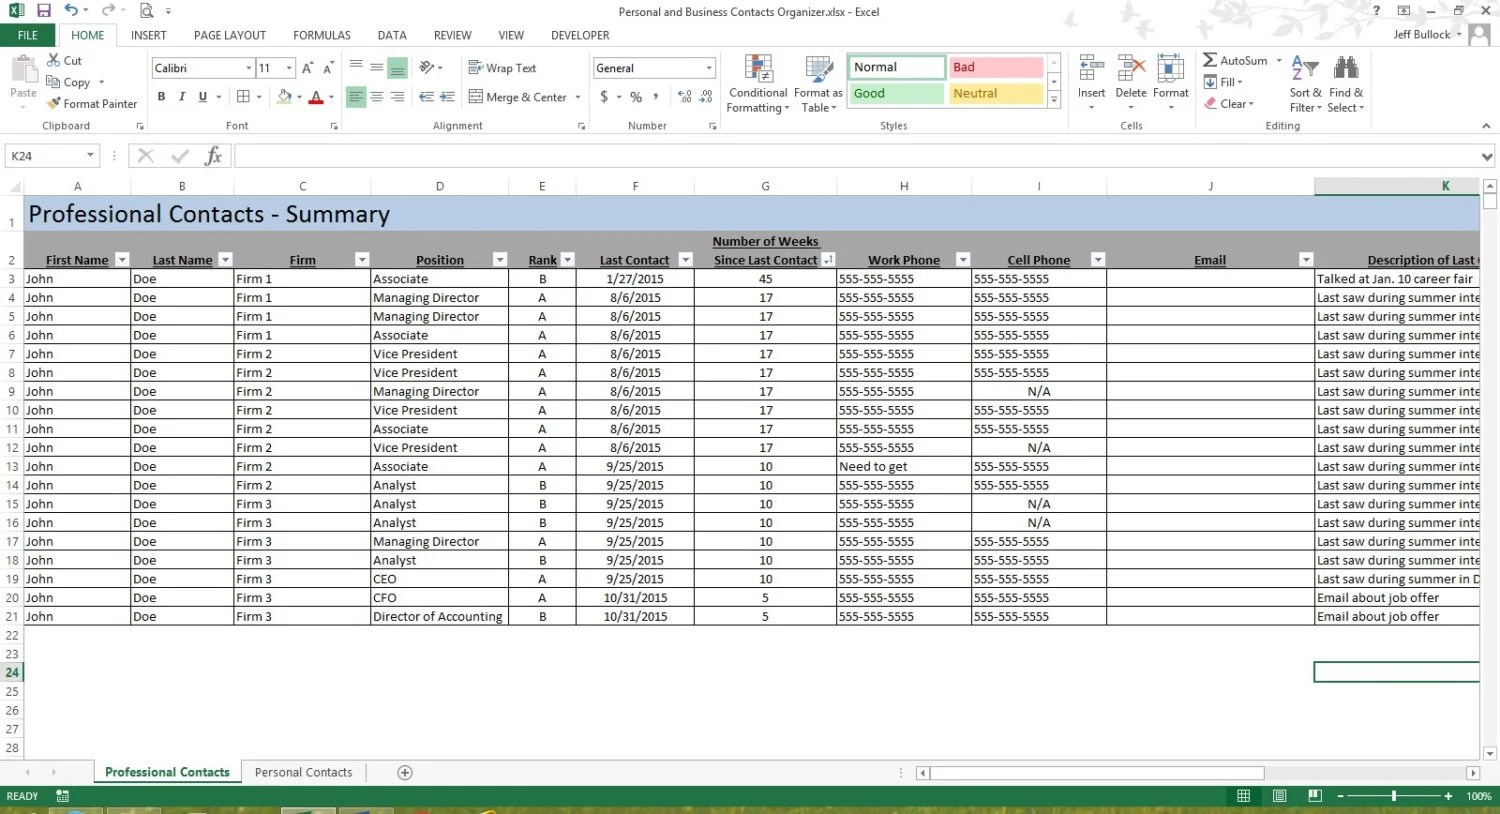 Personal  Professional Contacts Organizer Microsoft Excel Etsy